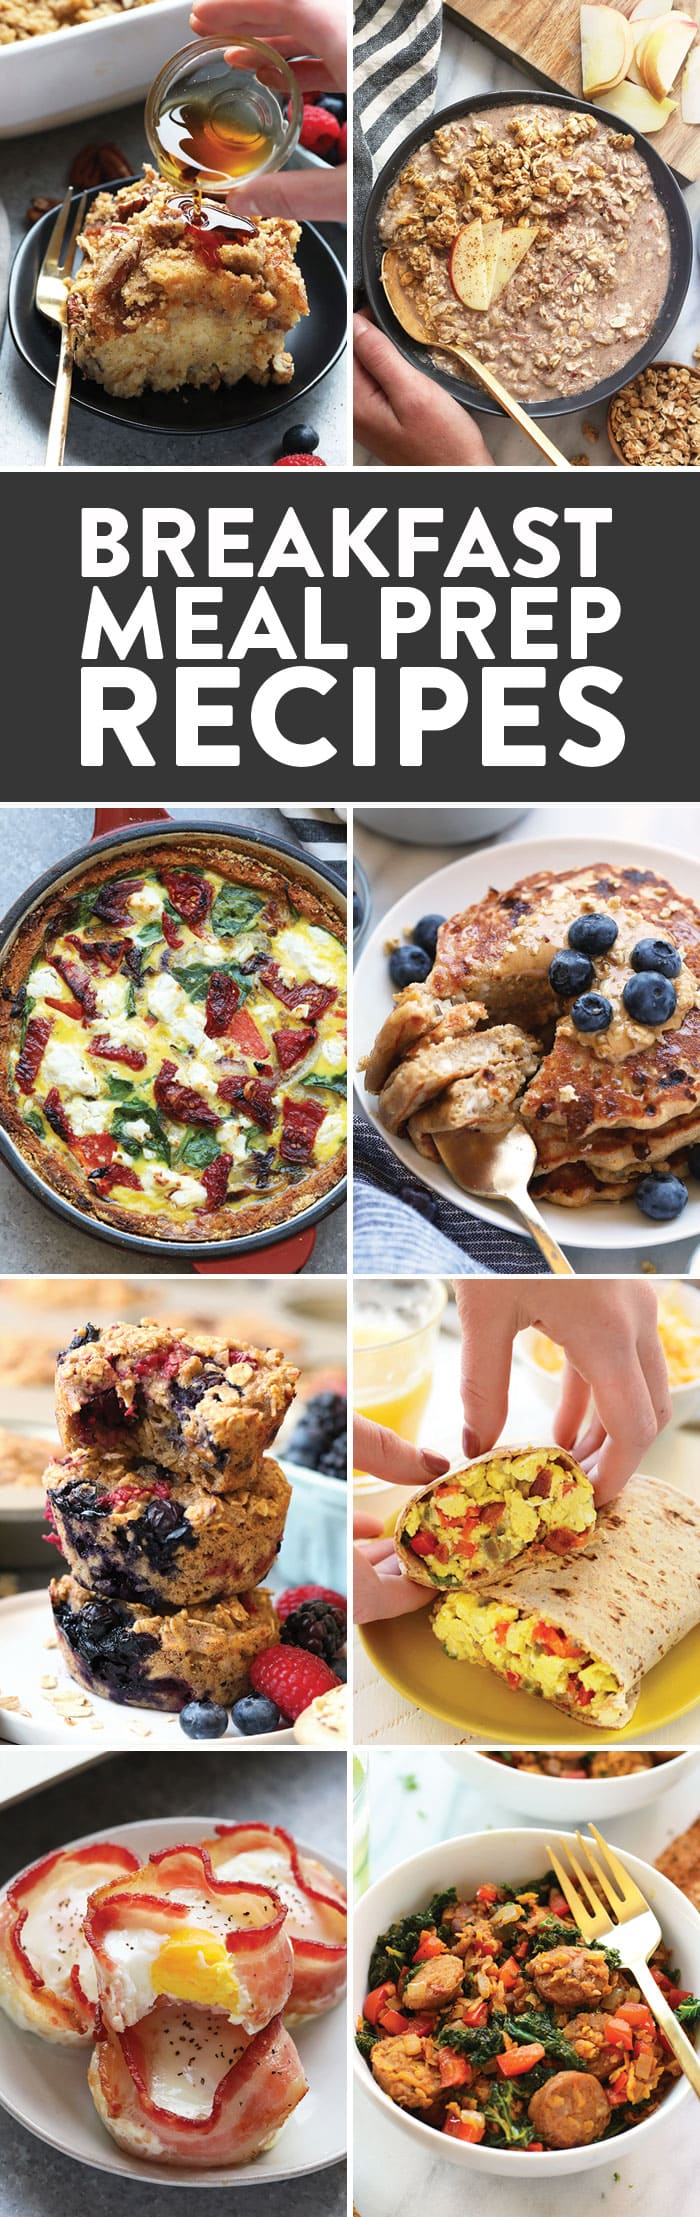 Jump on the meal prep train and save yourself some time and energy in the morning with these healthy breakfast meal prep recipes. Prep all of your breakfasts on Sunday so come Monday morning, you can sip your coffee with ease. Breakfast meal prep is a great way to start your morning off with a nutritional meal and a little less stress.